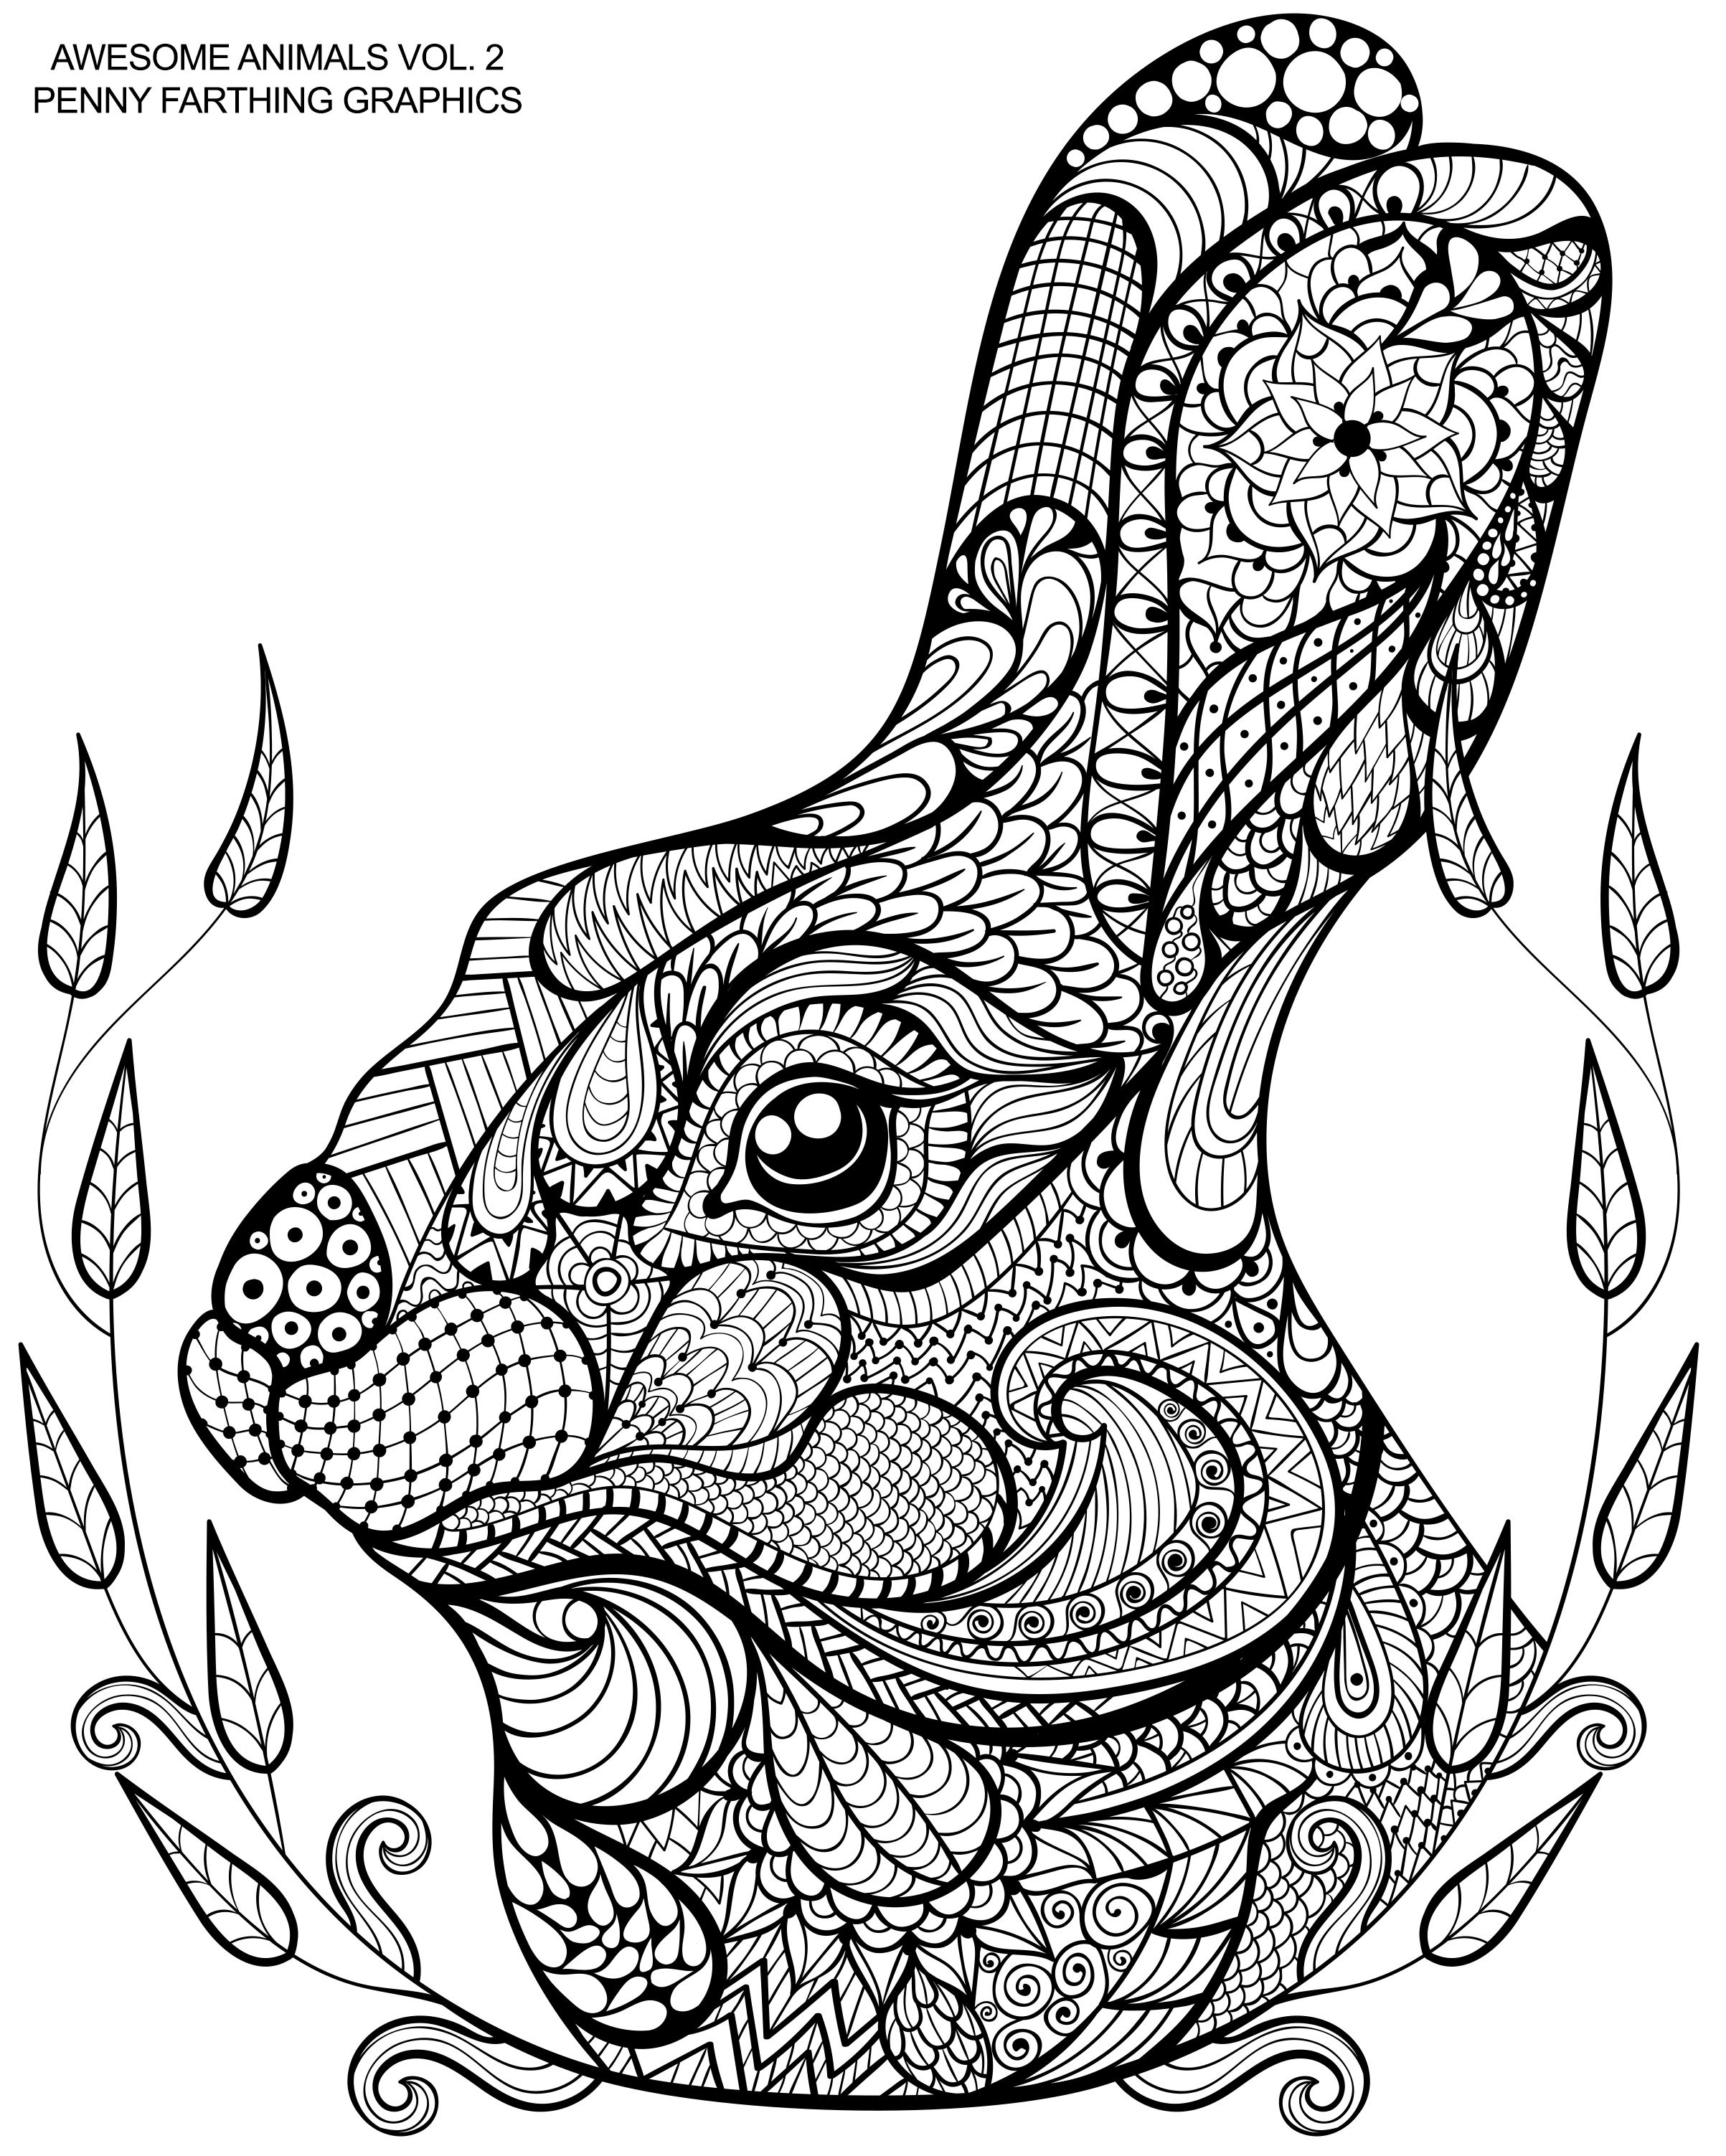 Cute Bunny From Awesome Animals Vol 2 Mandala Coloring Pages Animal Coloring Pages Dragon Coloring Page